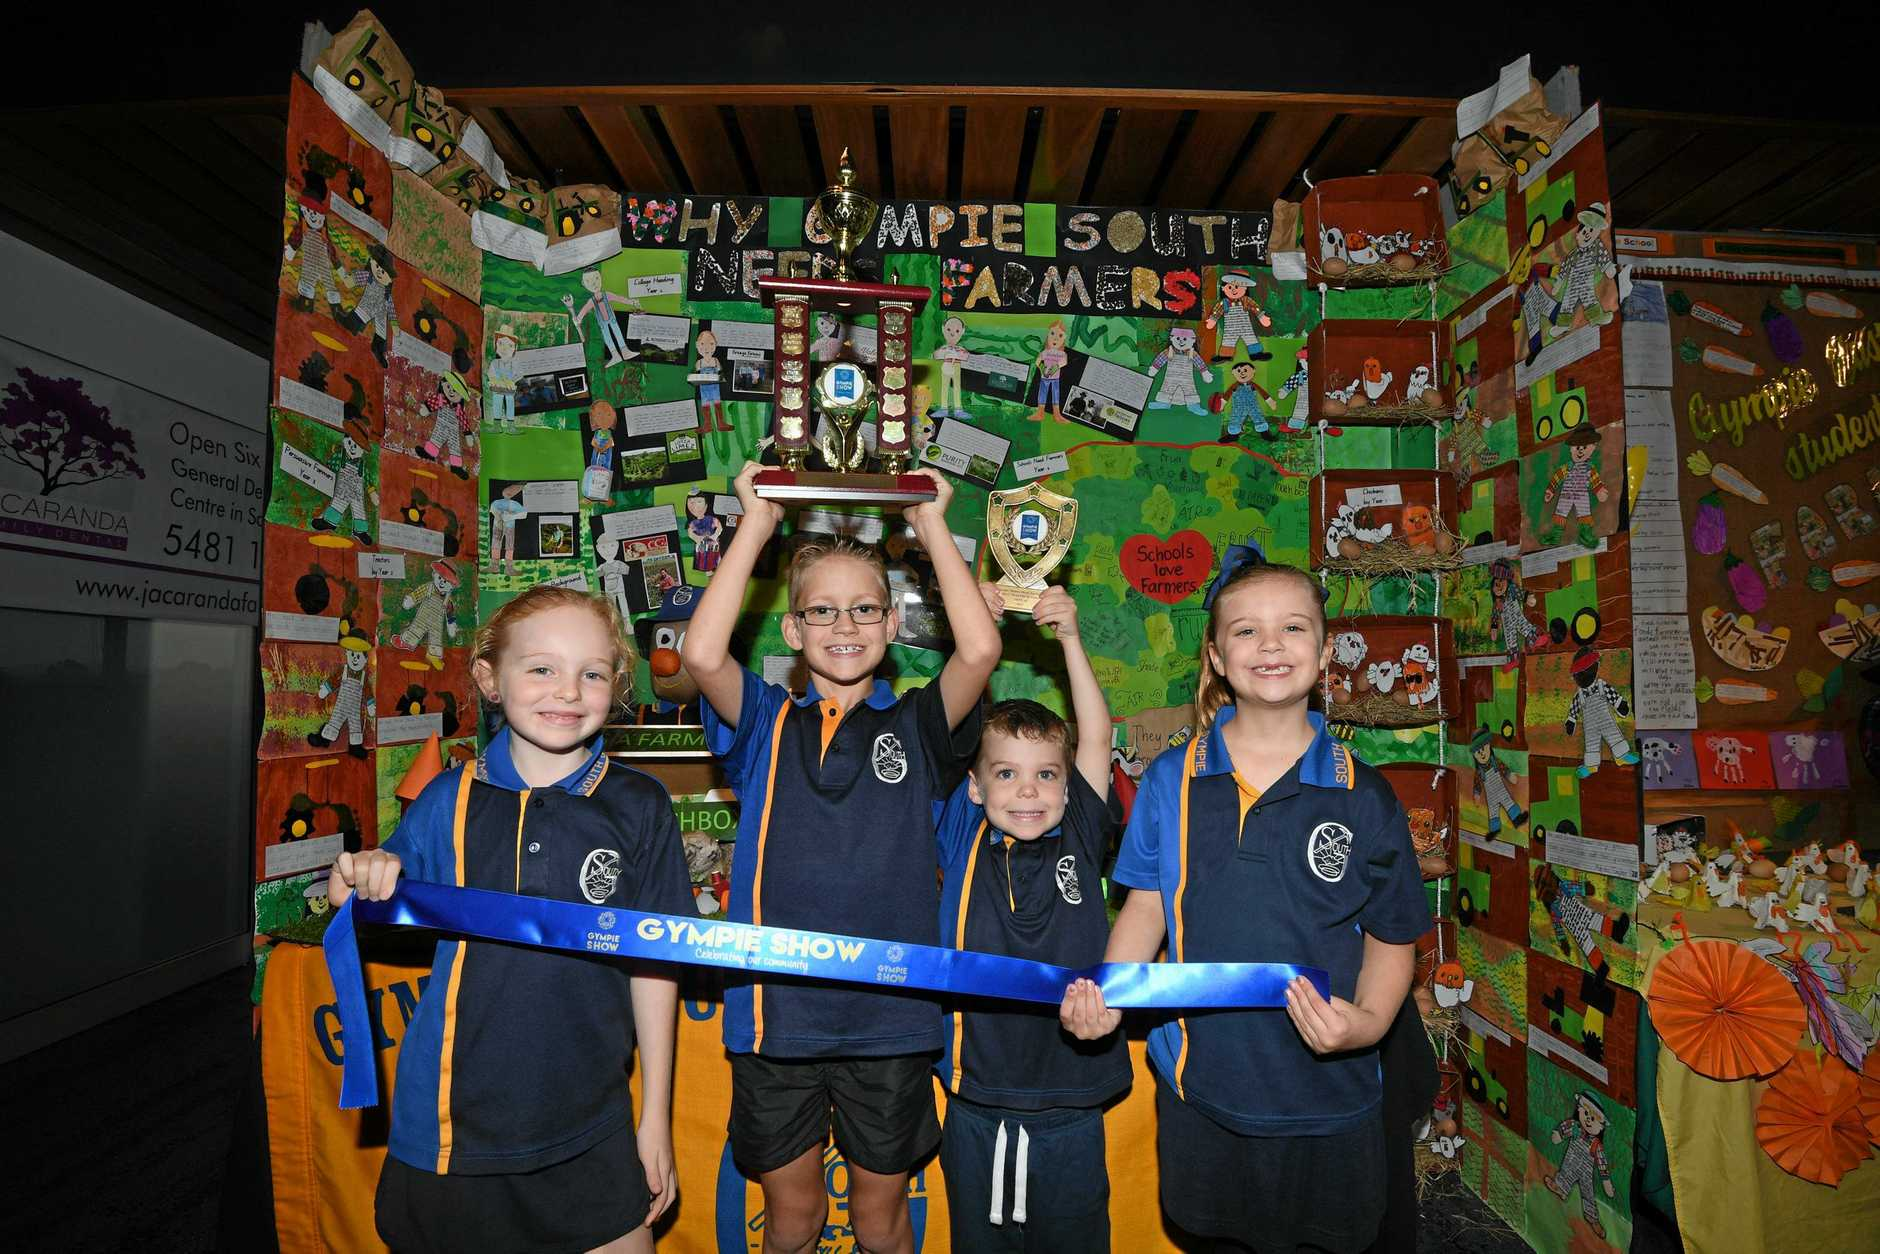 WINNERS: Gympie South School students Ashlee Taylor, Xander Neal, Coen Taylor, Skyla Neal had plenty to smile about at the Gympie Show yesterday.